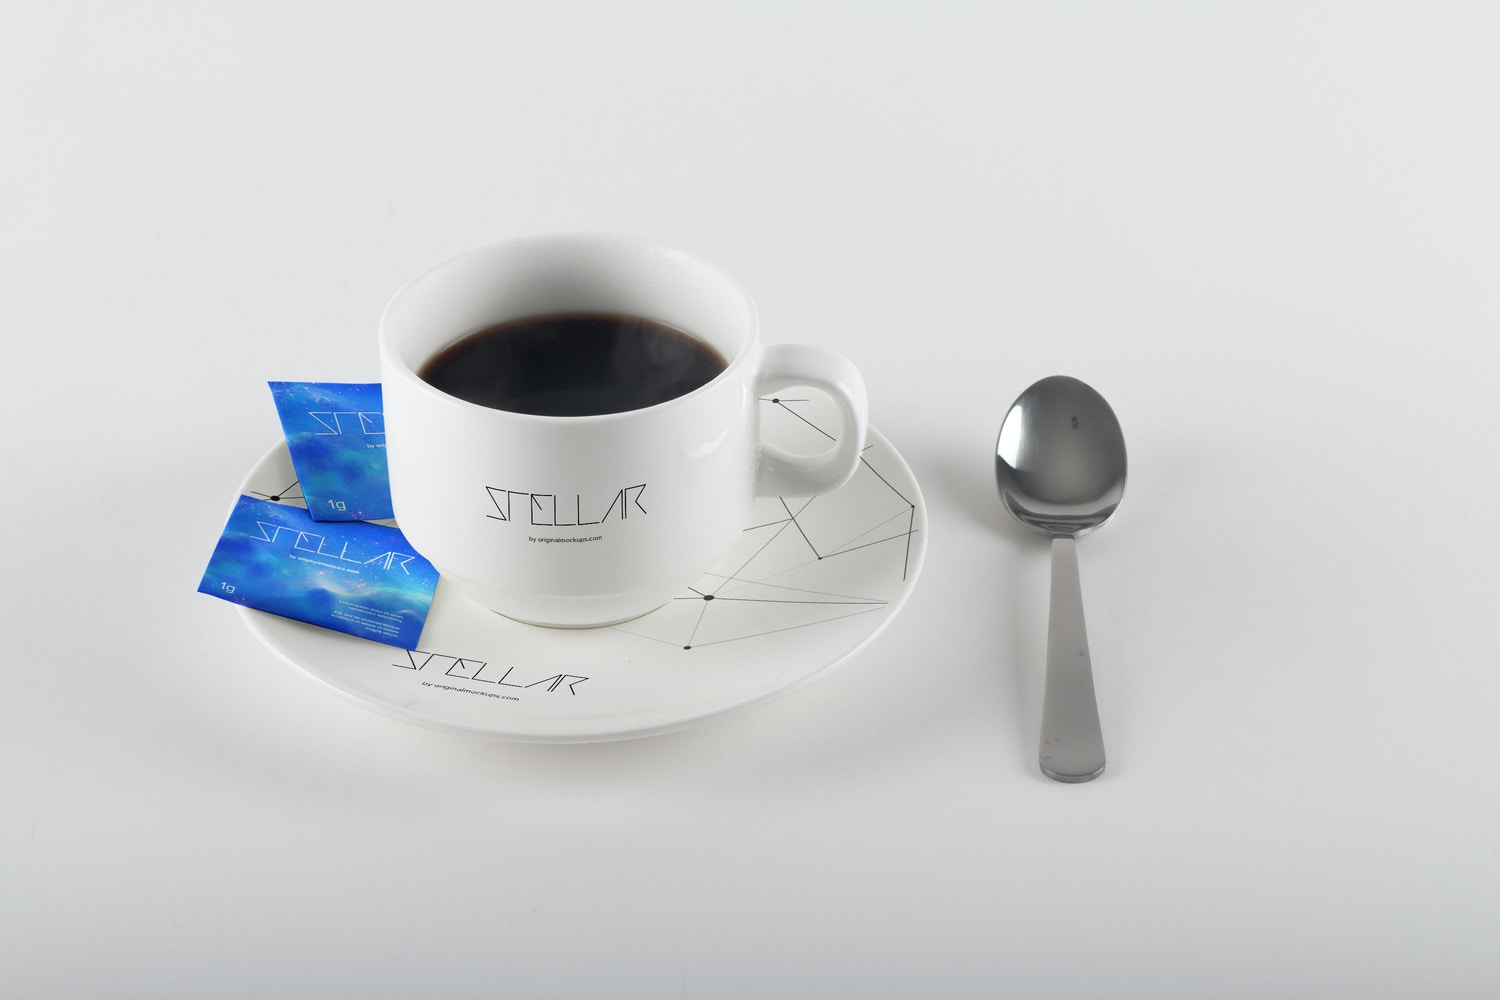 Coffee Cup and Sugar Bags Mockup 01 por Original Mockups en Original Mockups